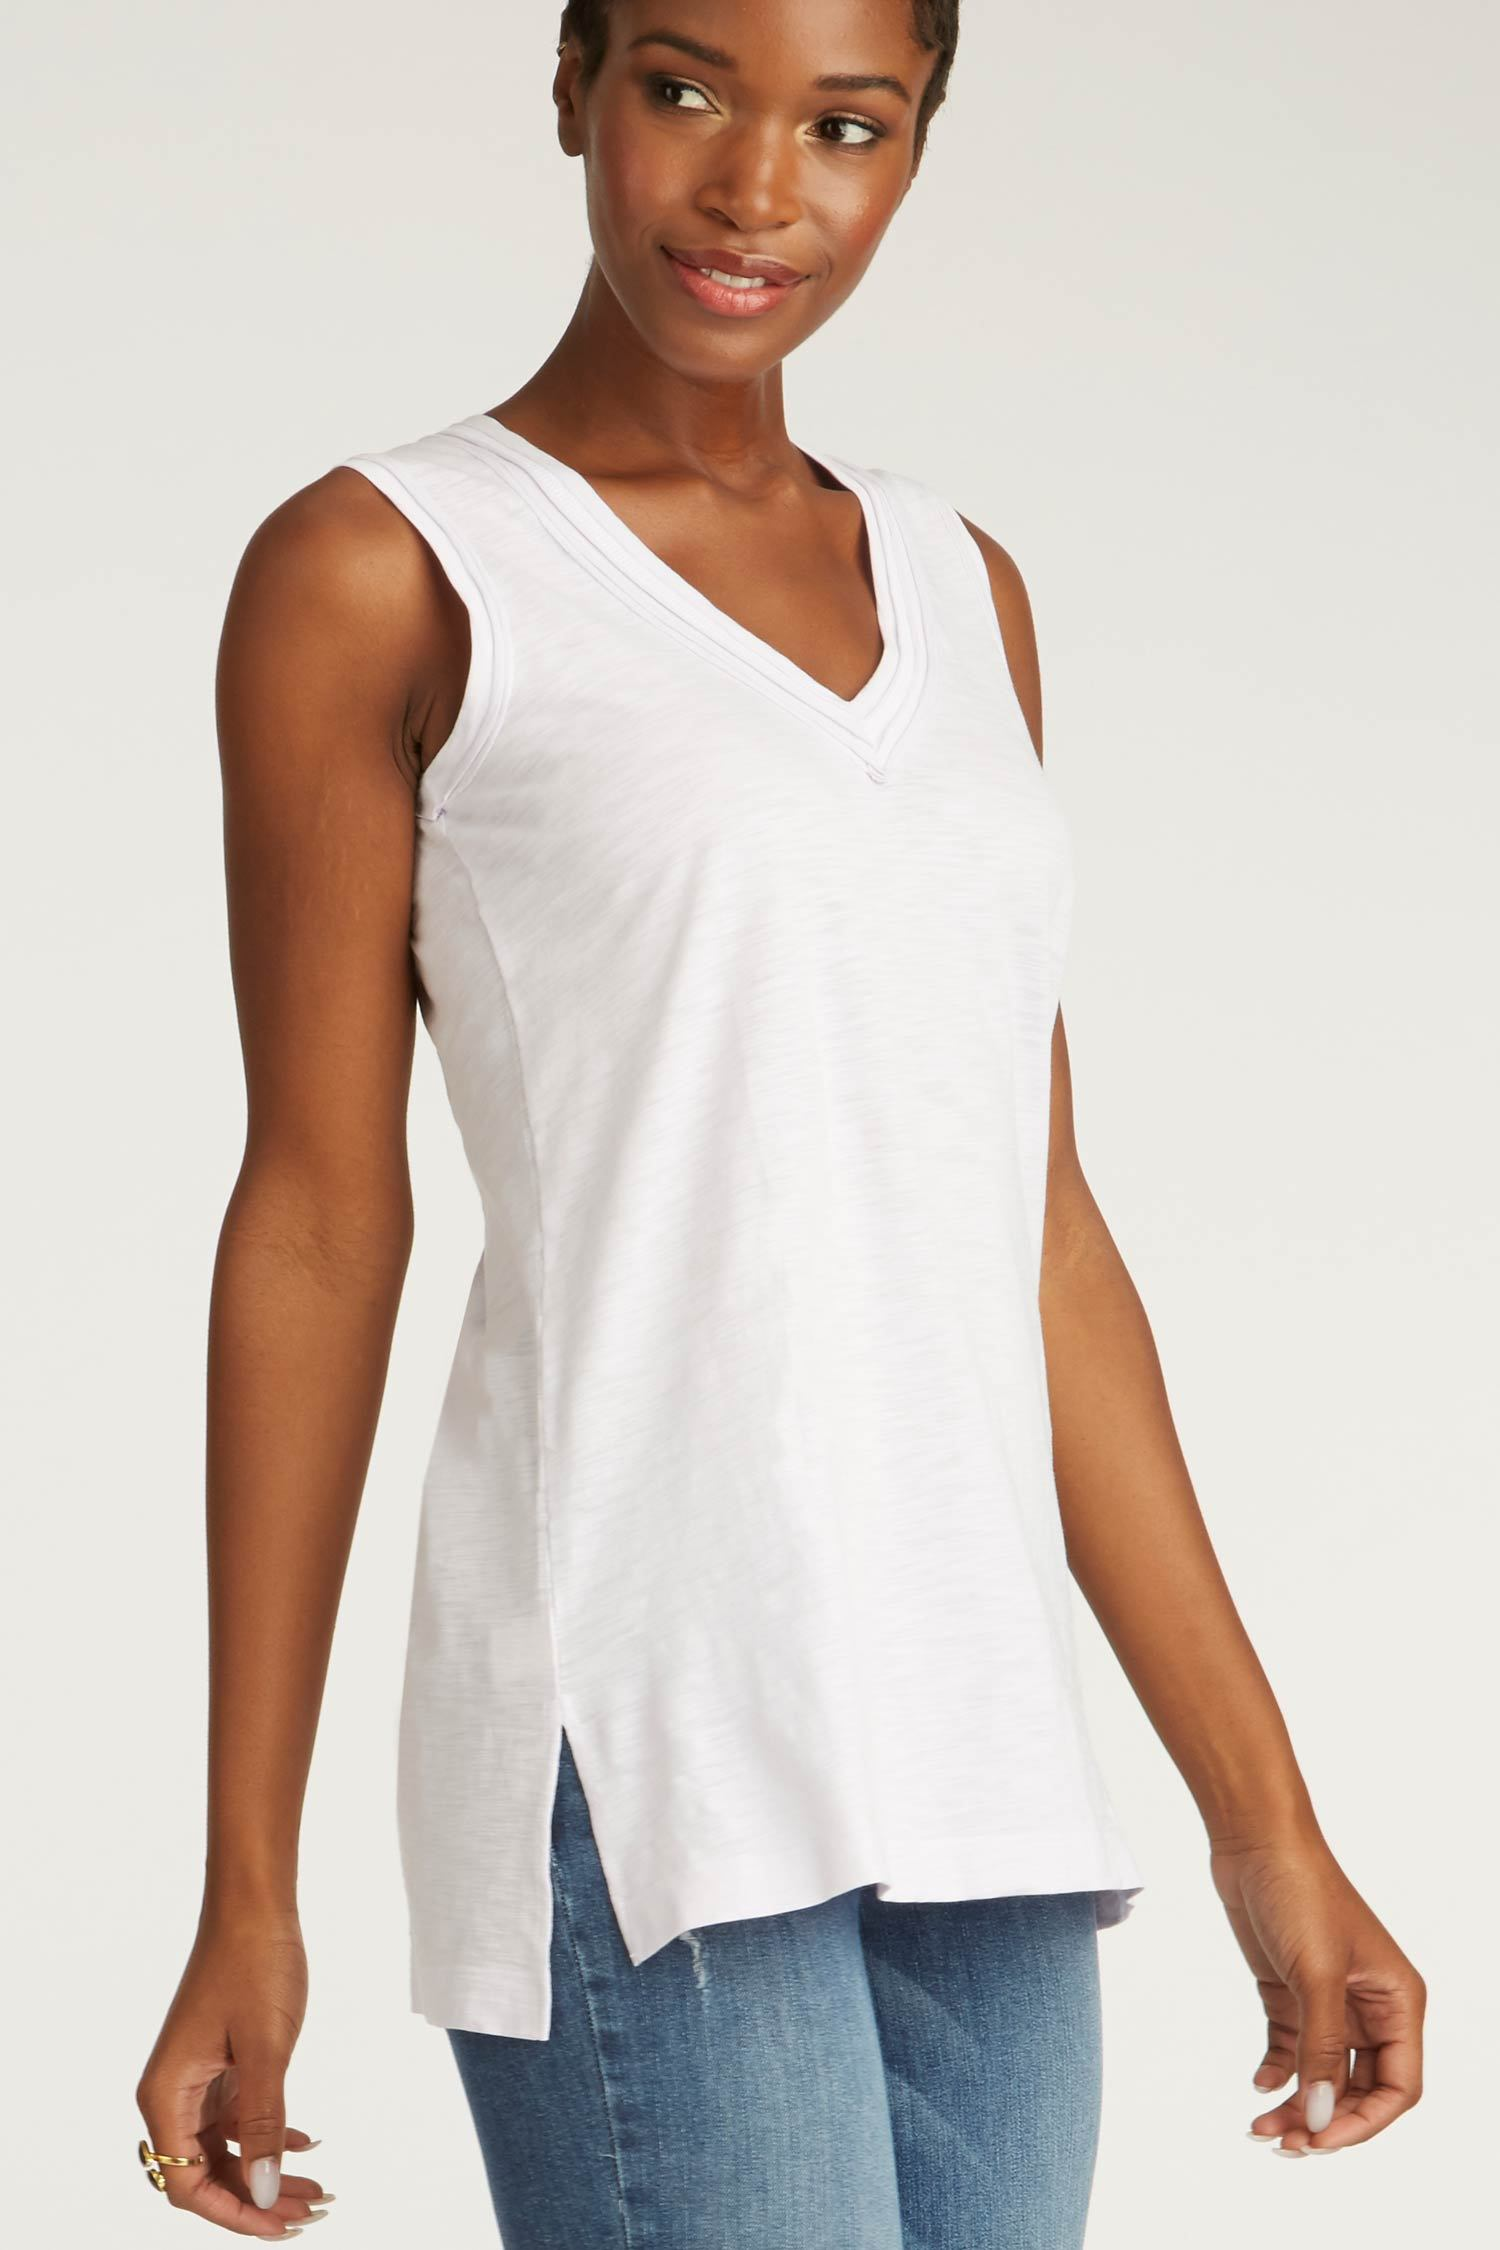 womens tank top white long v neck tee organic cotton clothing for women